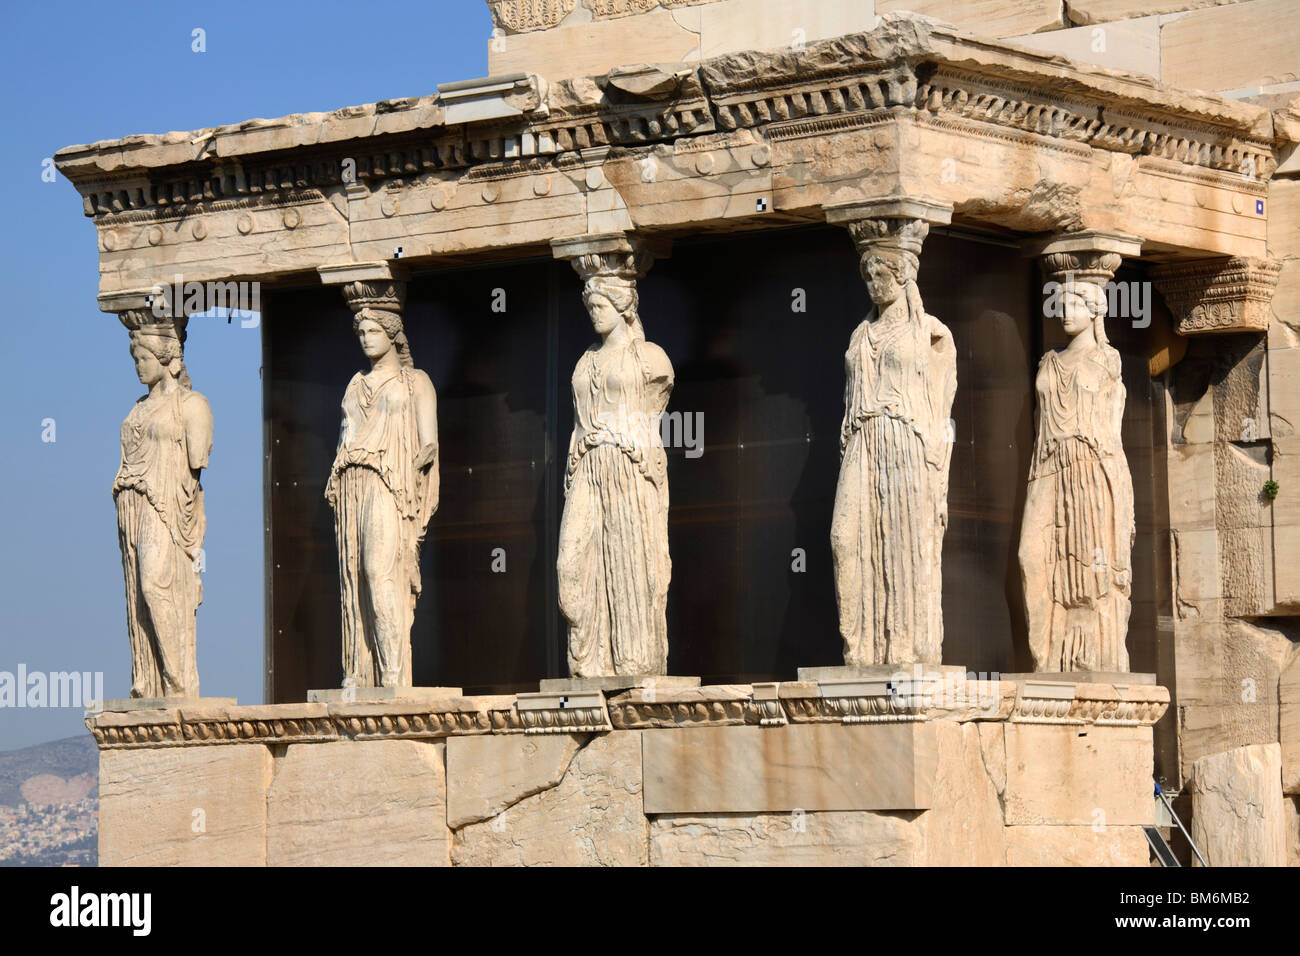 The Caryatid Porch of the Erechtheion, Athens, Greece - Stock Image